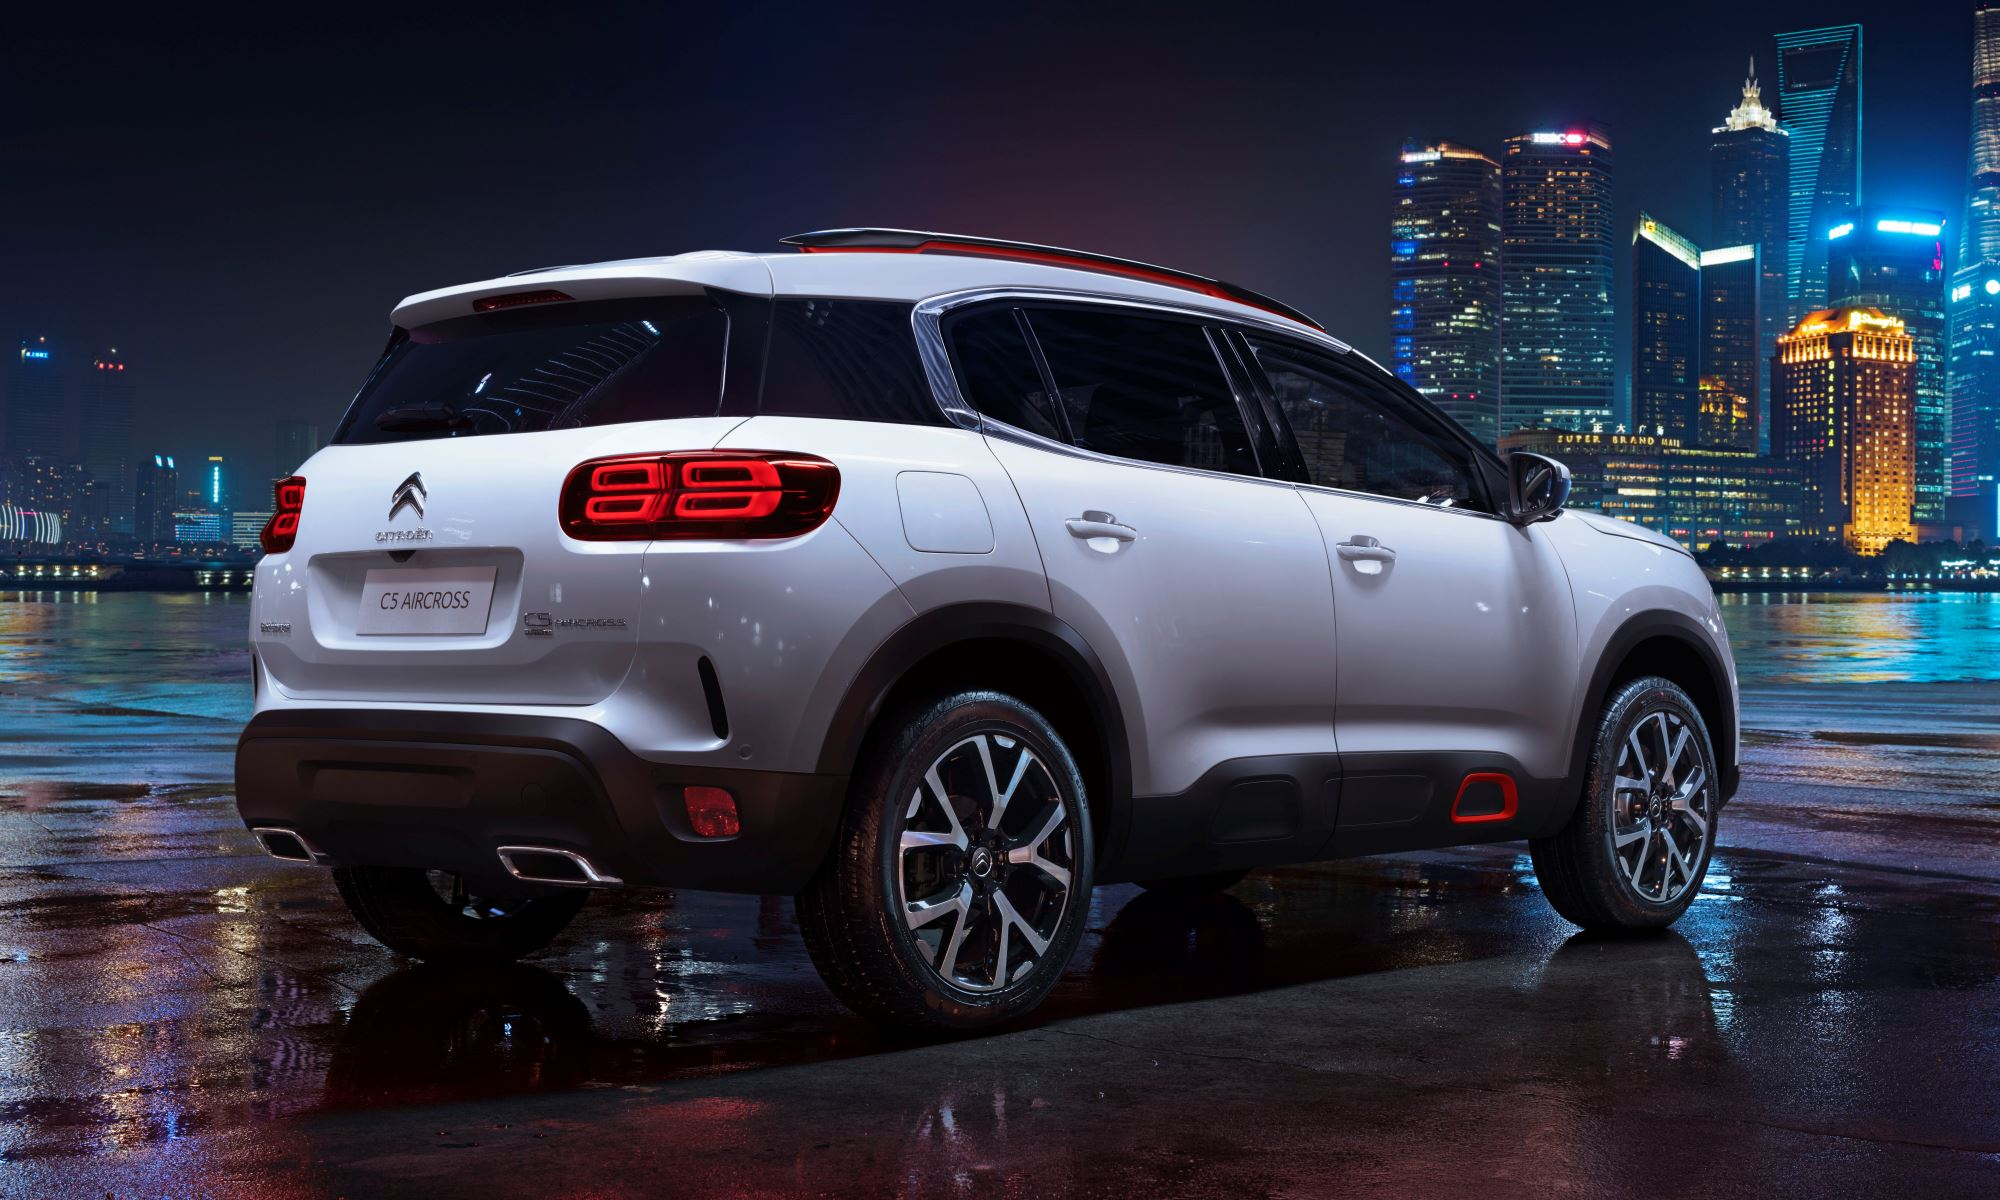 Citroen C5 Aircross rear three quarter rear